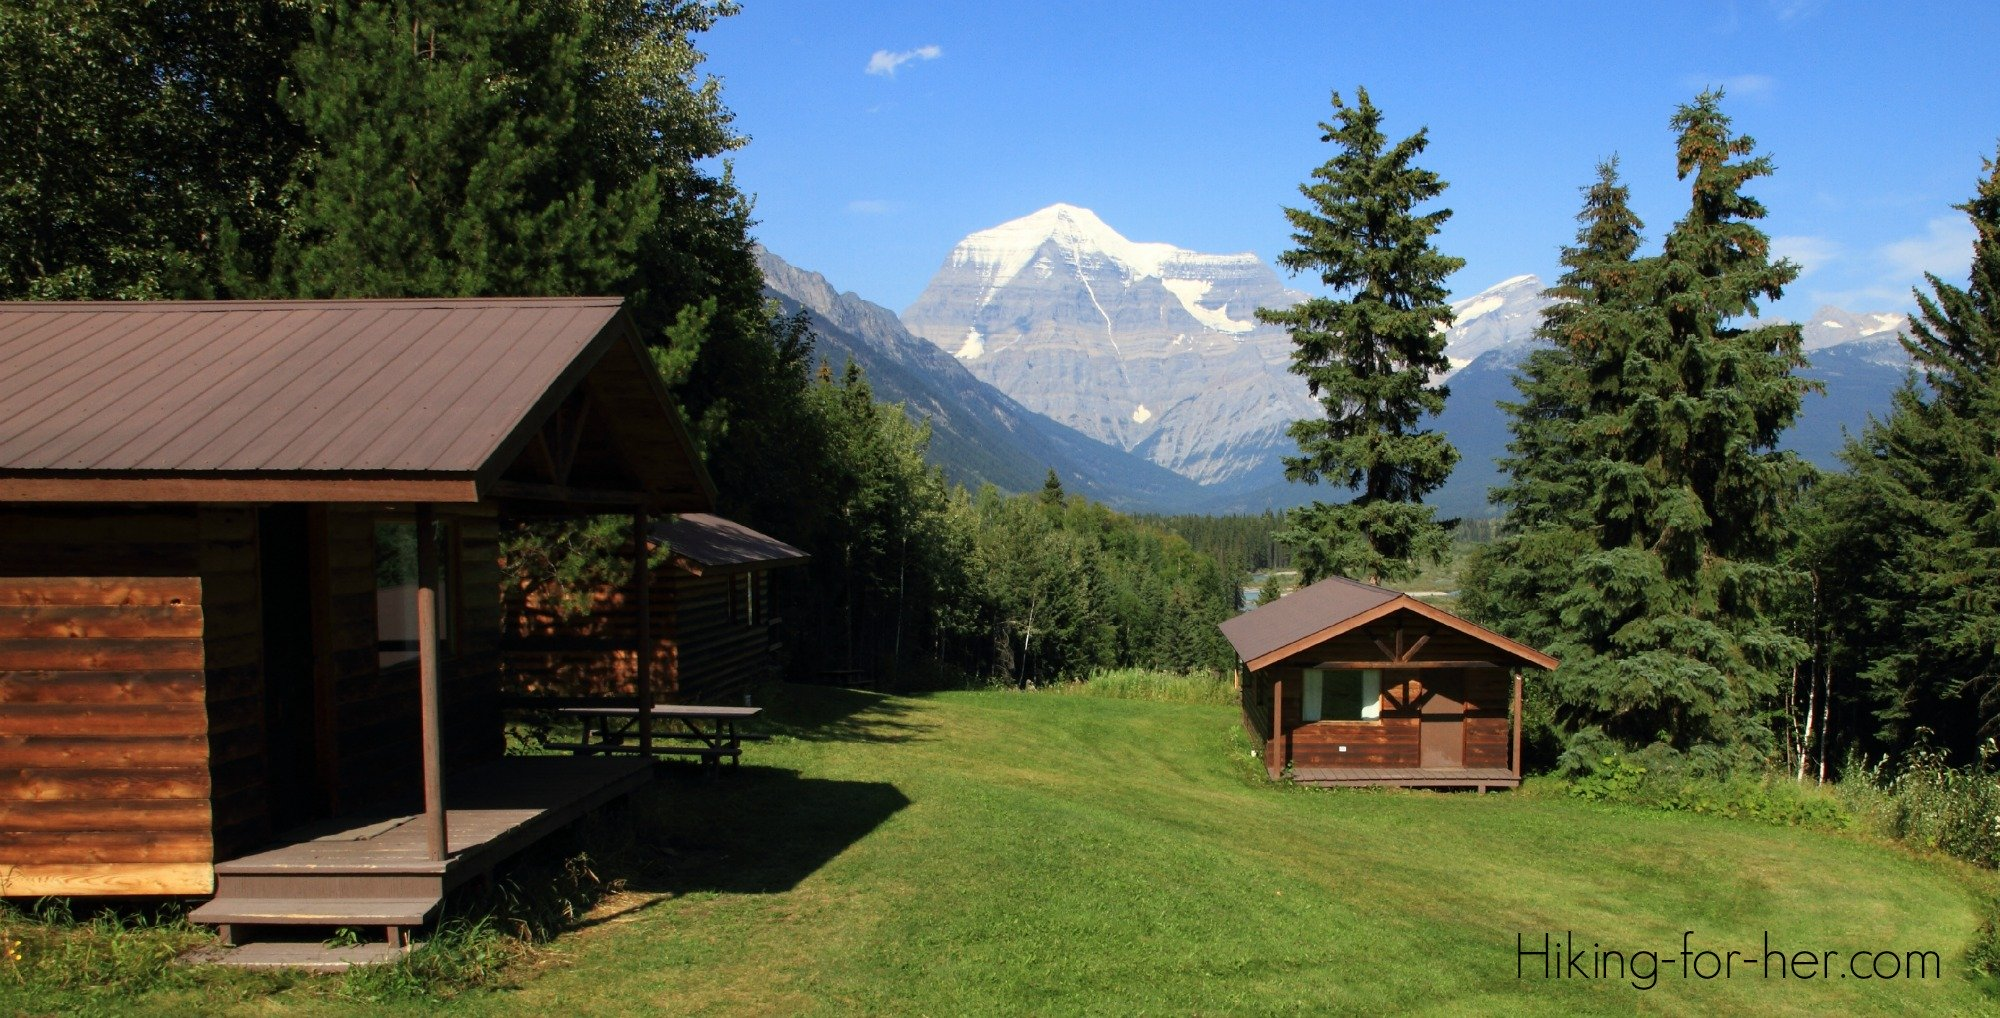 Mt. Robson, British Columbia, with log cabin in foreground